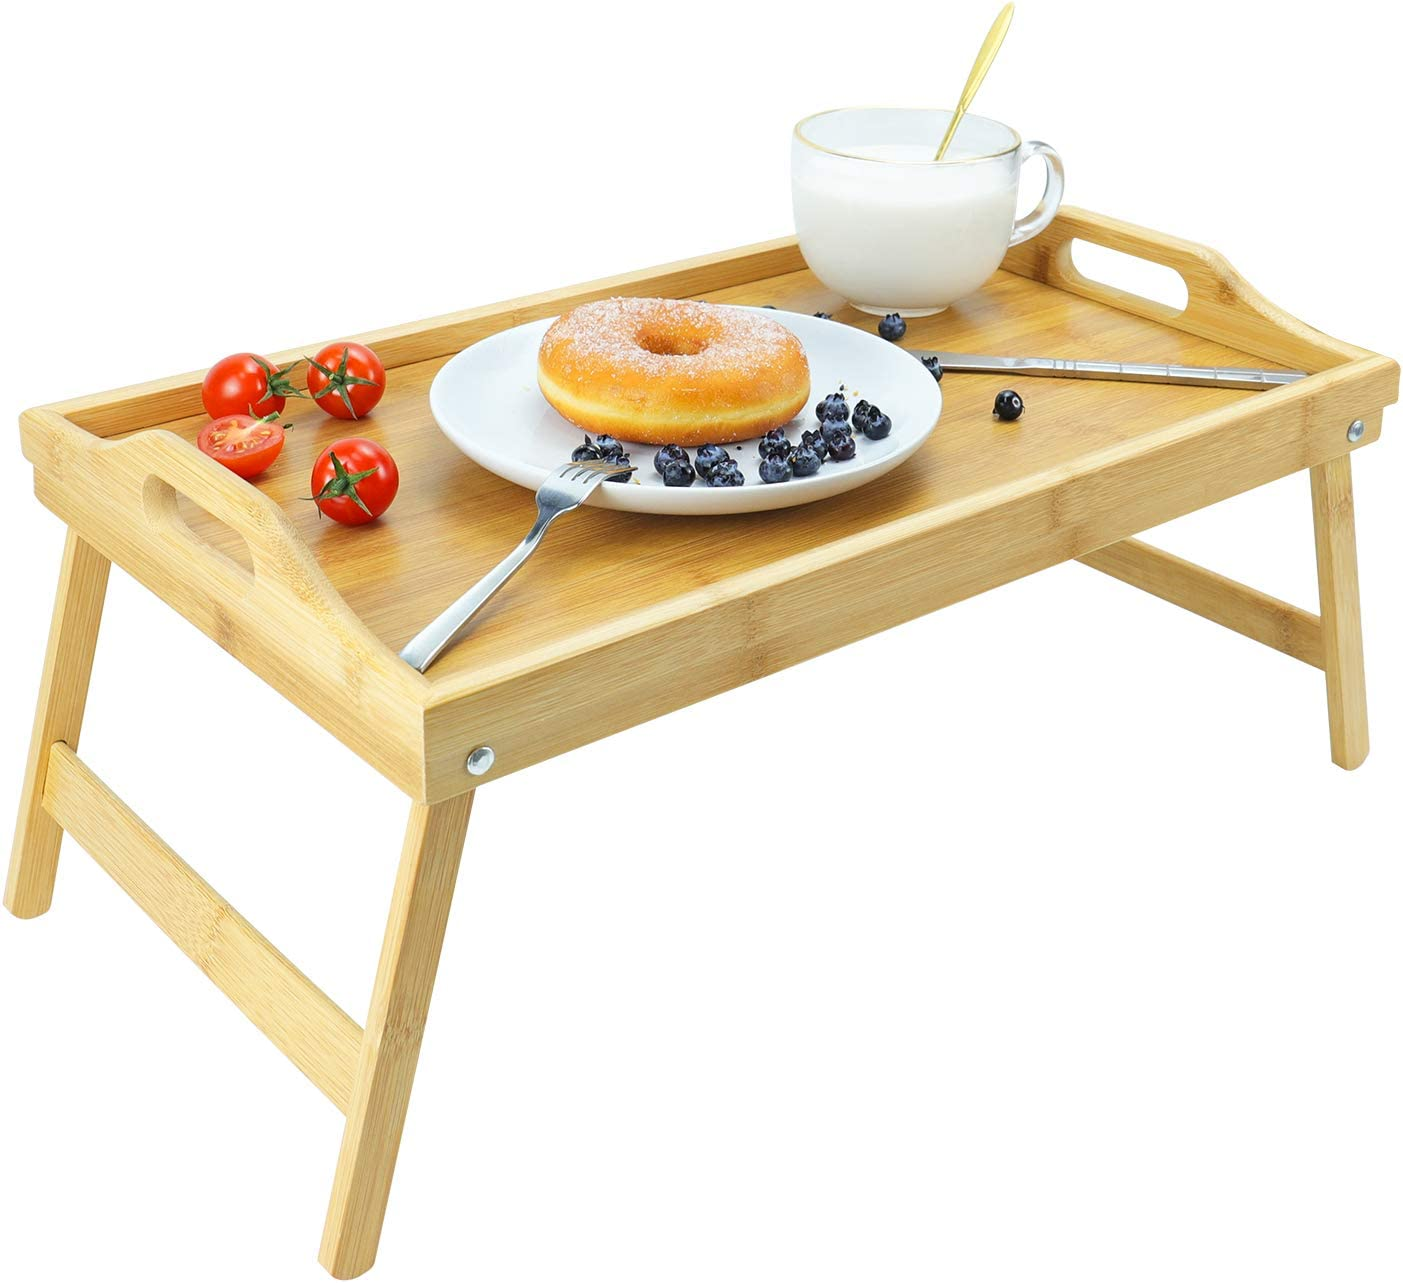 augtarlion Bamboo Breakfast Trays, Bed Tray with Folding Legs Foldable Breakfast Trays Table with Carring Handles Portable Laptop Desk Snack Tray Serving Tray for Reading, Eating, Working (16.5 Inch)